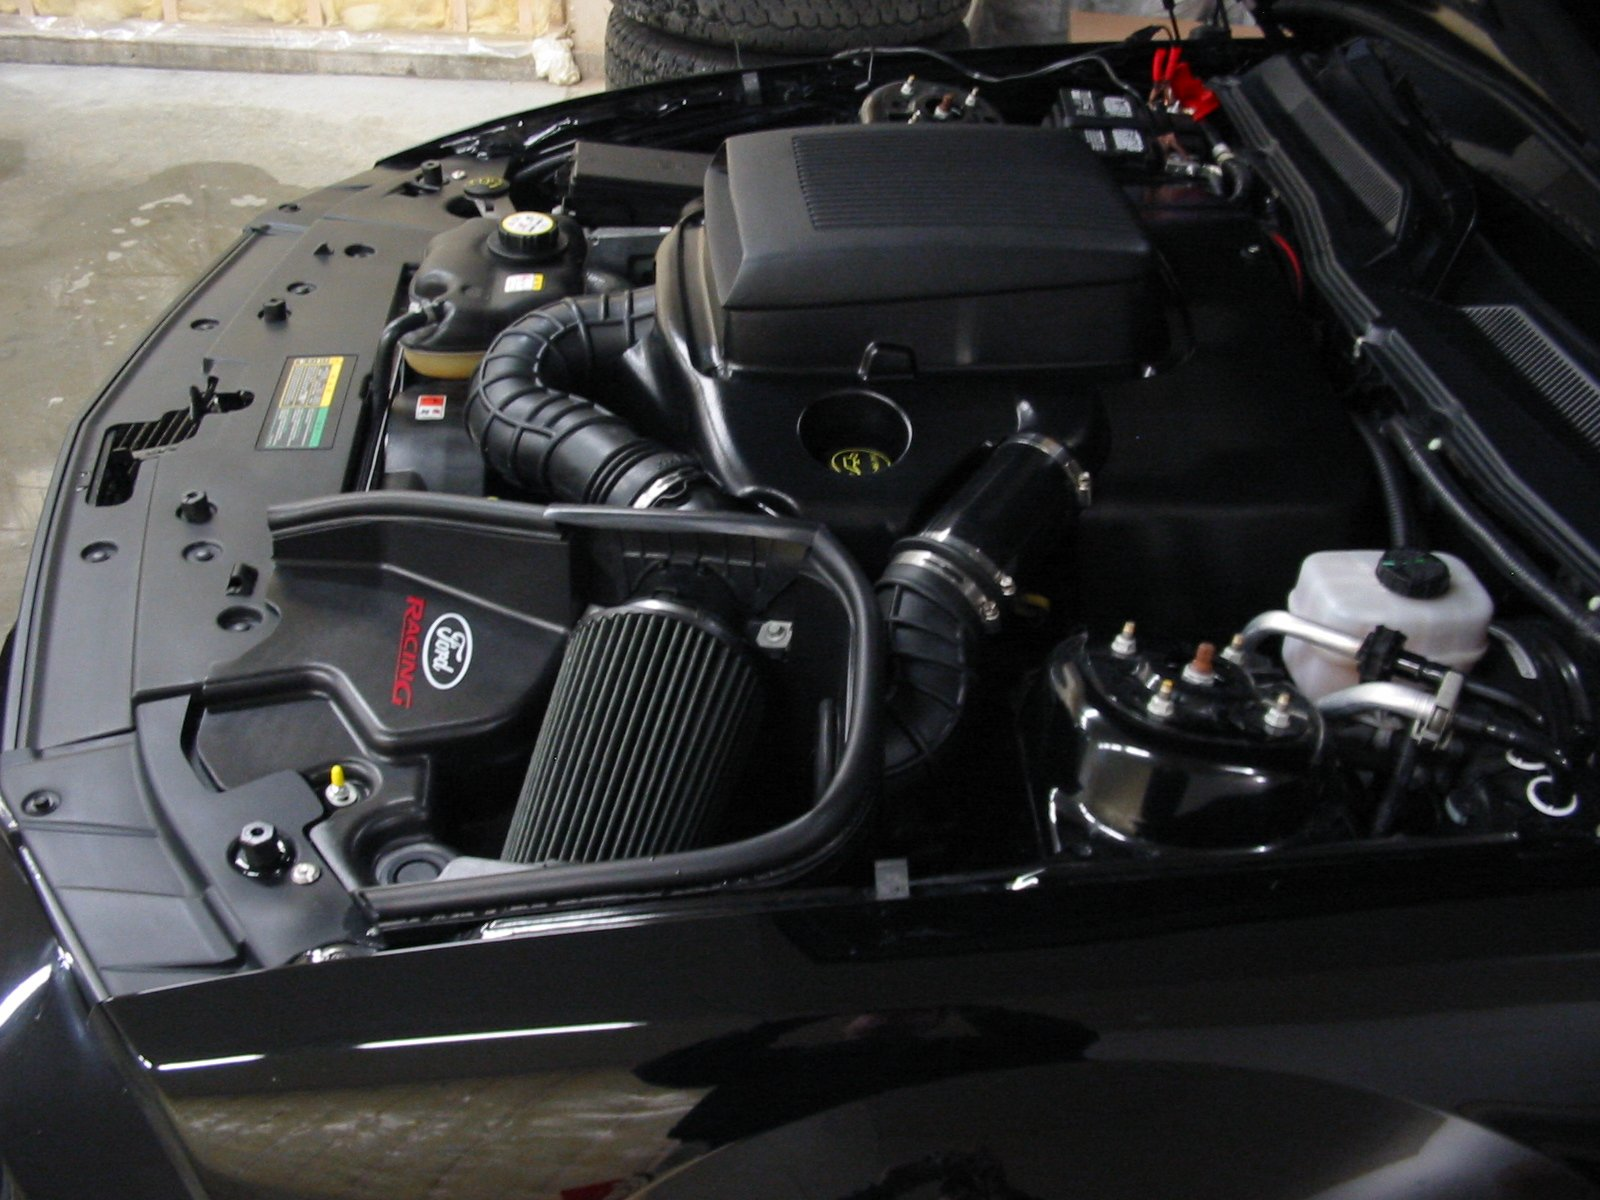 Air intake on the hood of a car - a luxury or a necessity 21